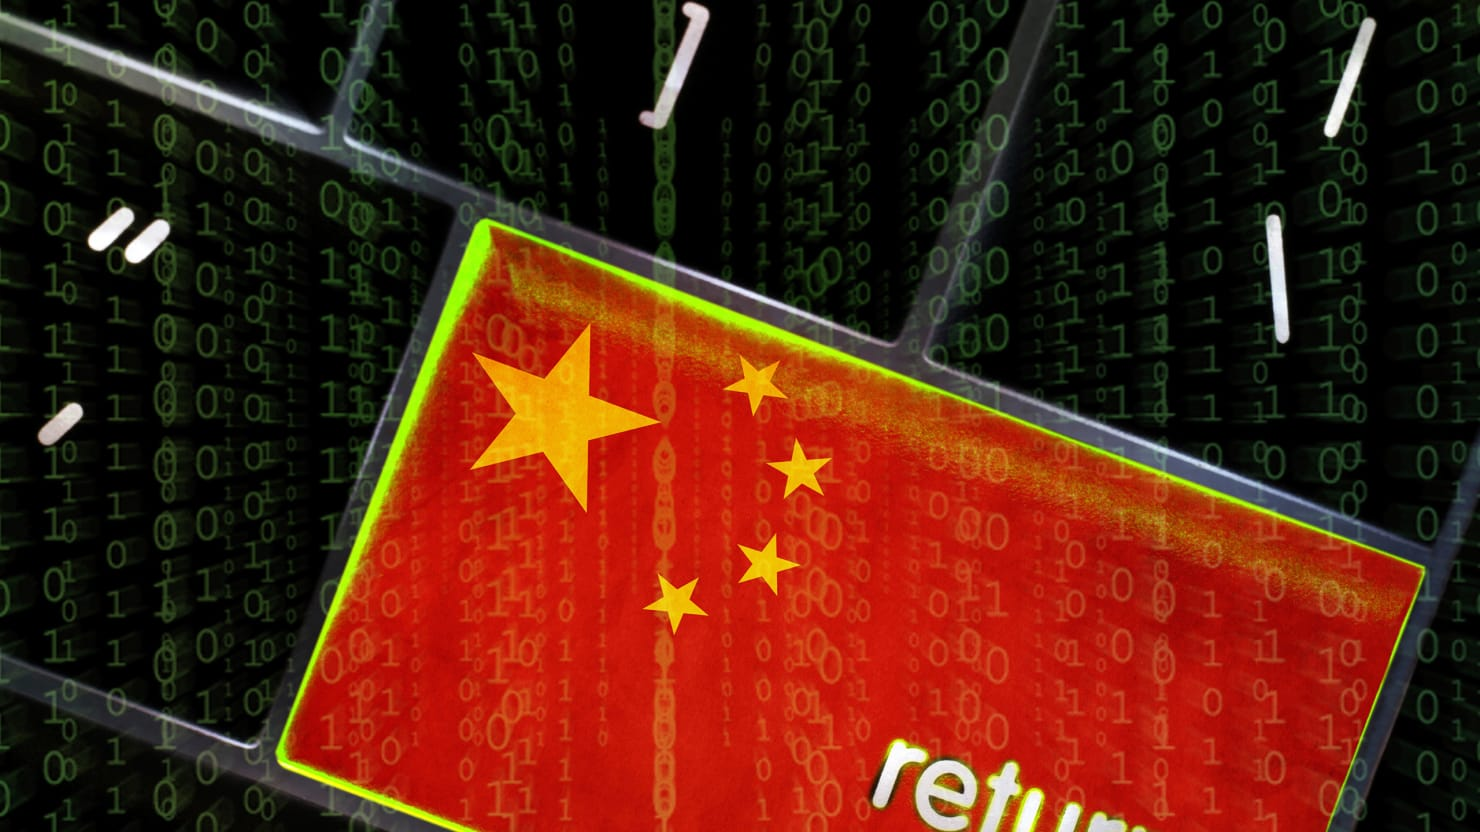 FBI Warns U.S. Companies to Be Ready for Chinese Hack Attacks